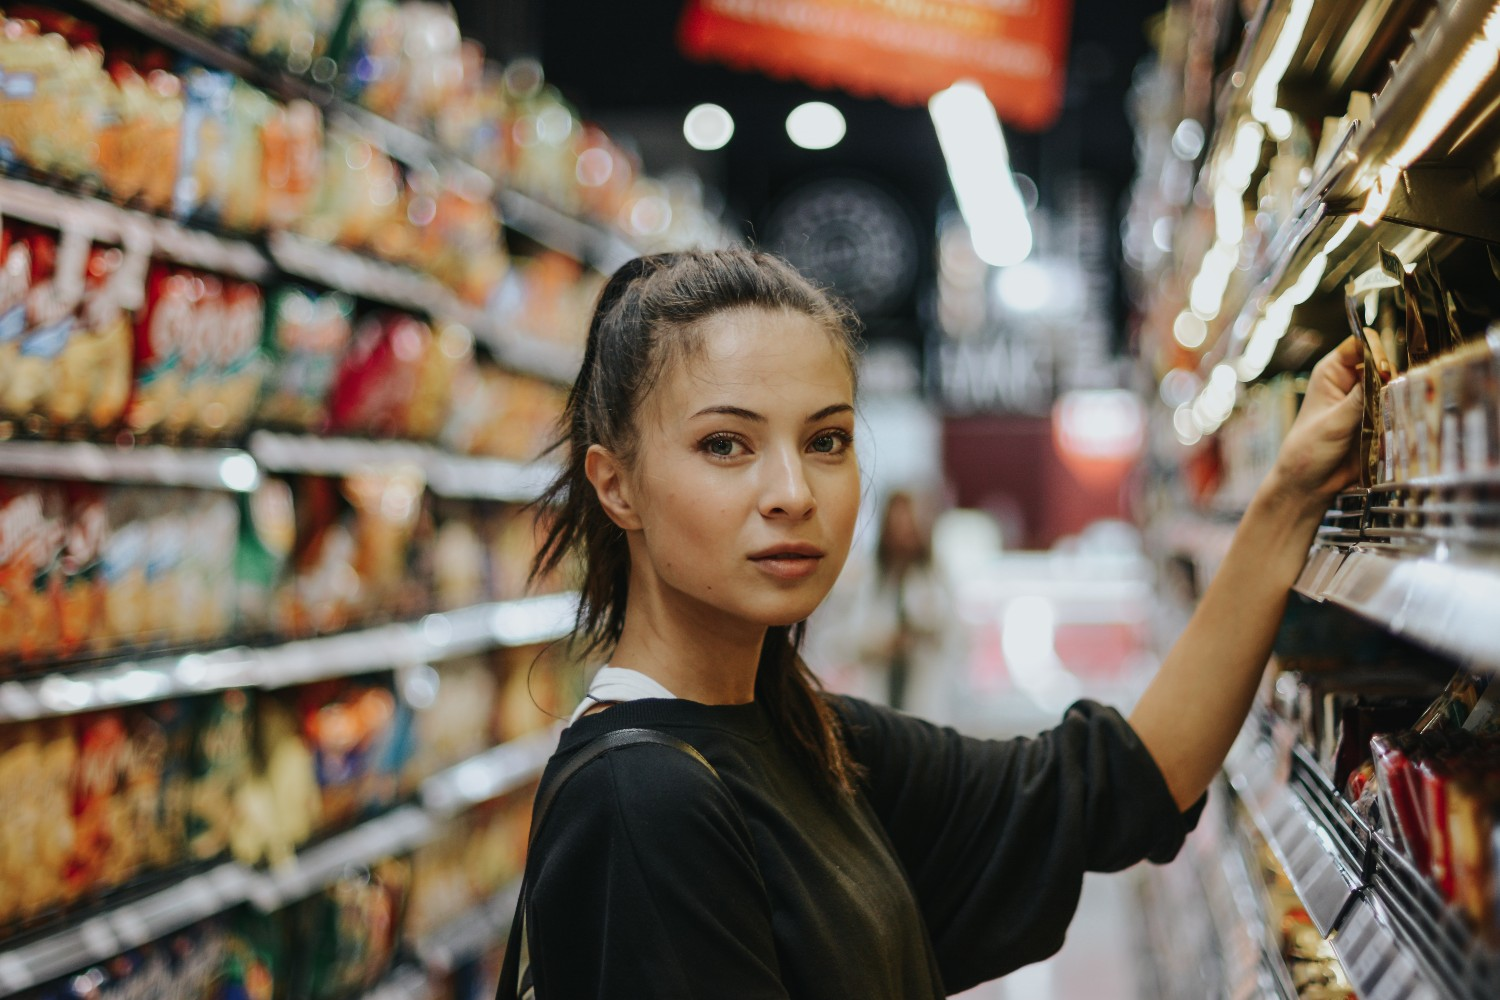 Female shopper selecting product from shelf